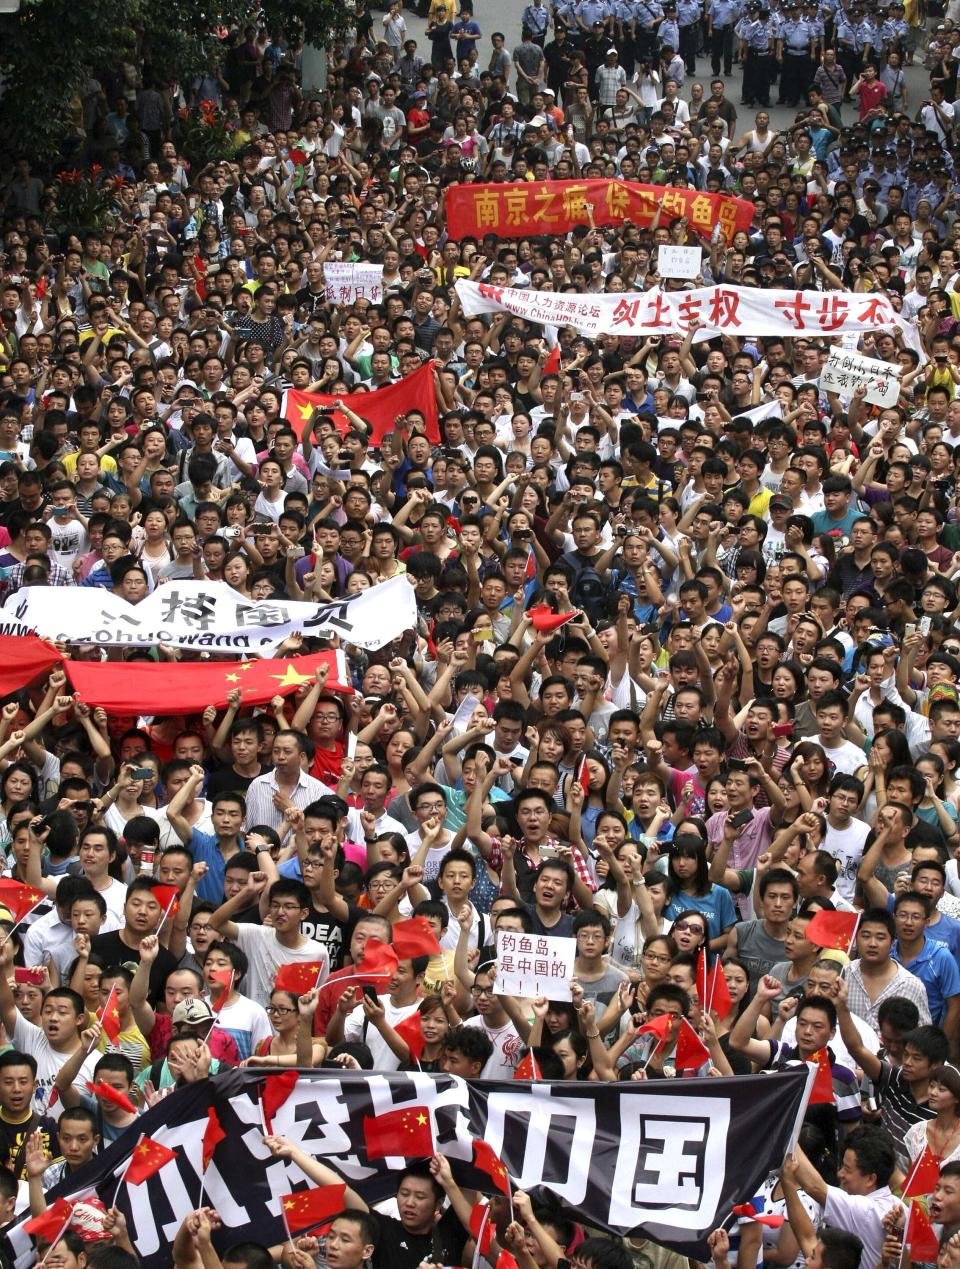 Anti-Japan protesters march in Chengdu, in southwestern China's Sichuan province, Sunday Aug. 19, 2012. Japanese activists swam ashore and raised flags Sunday on an island claimed by both Japan and China, fanning an escalating territorial dispute between the two Asian powers. (AP Photo)  CHINA OUT